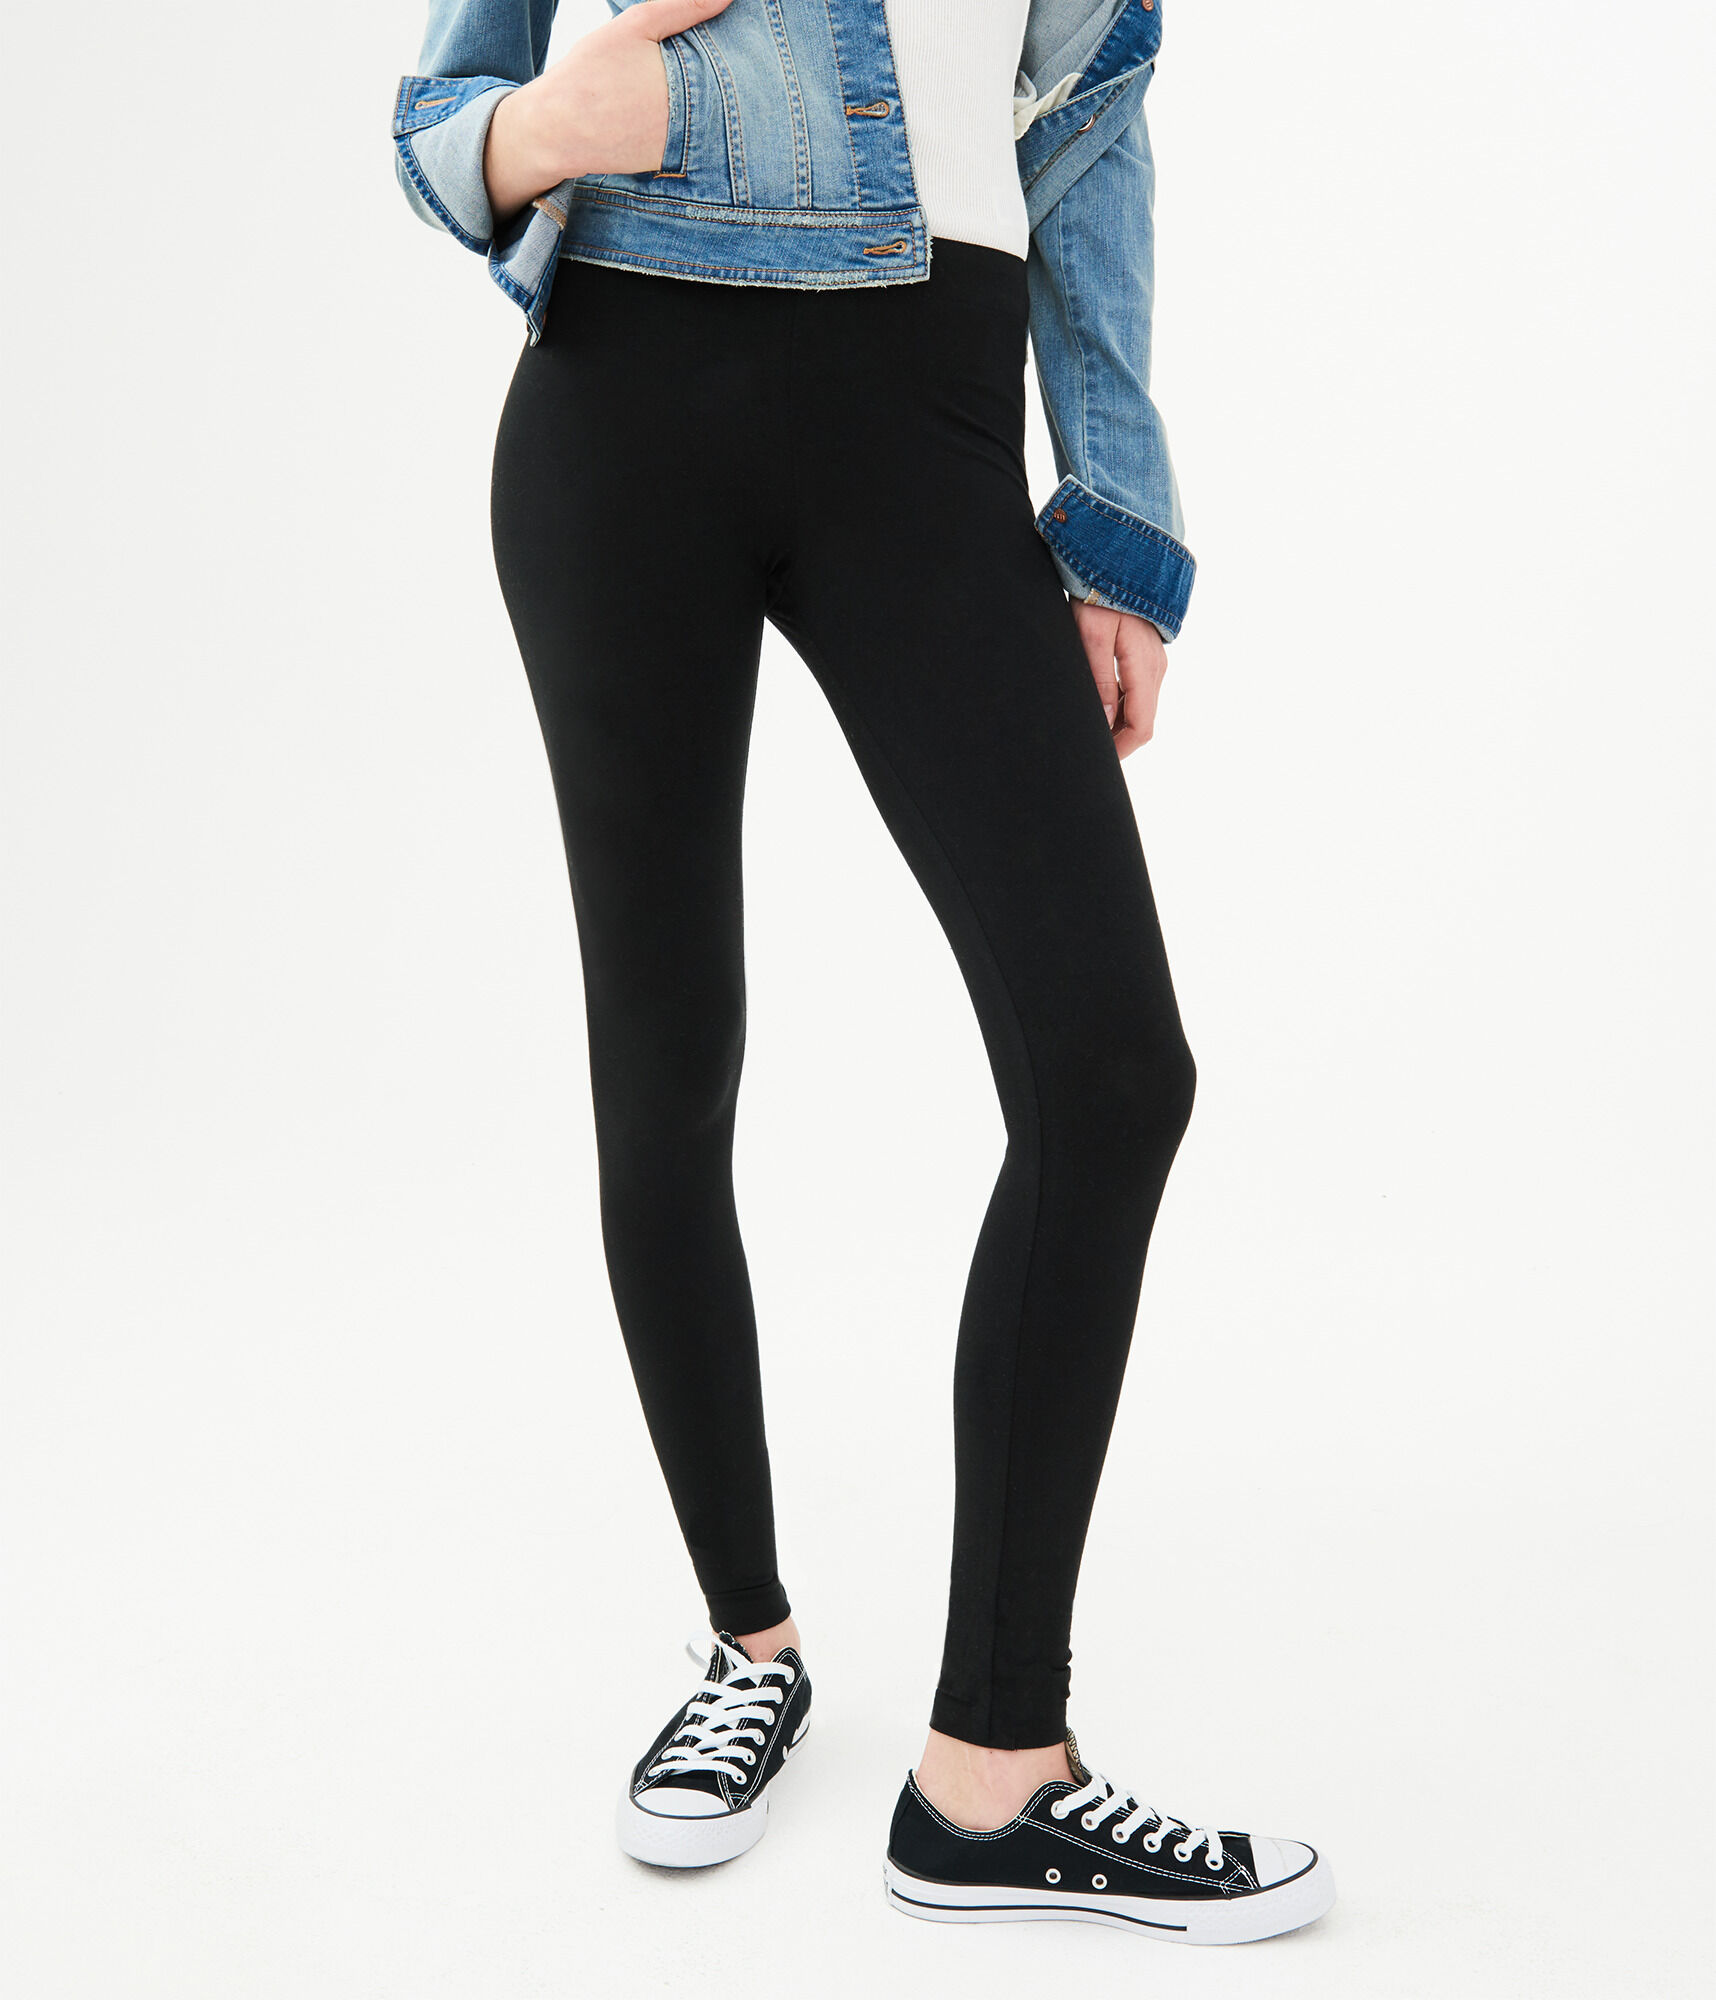 ef34c78d8011e Classic High-Waisted Leggings